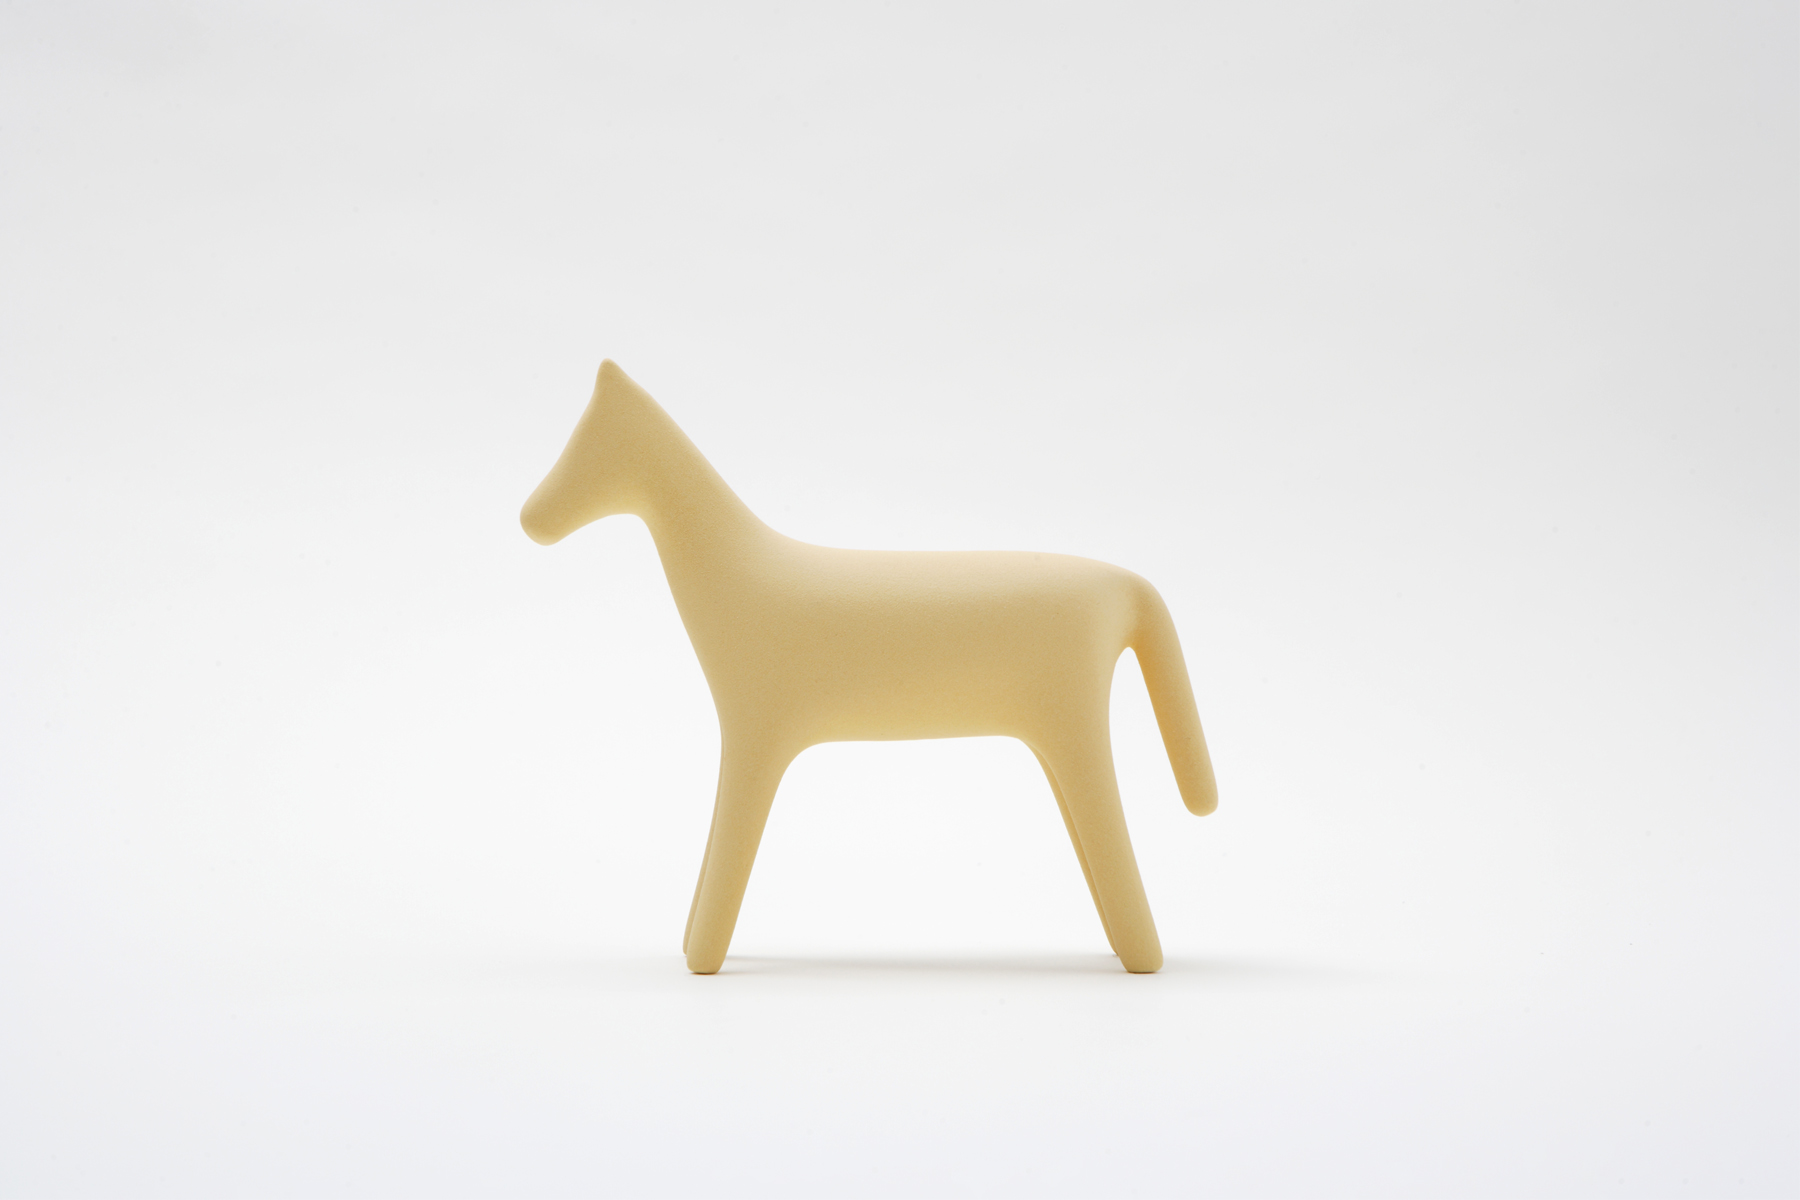 2018 / Client:    Pirwi    / Ceramics / Project assistant: Lucas Elizondo   Architect Luis Barragán had a profound esteem and fascination for horses. They influenced his work and were the central axis for some of his most valued projects. In the houses and haciendas he built, Barragán always made sure to have the presence of these beautiful animals. Horses represent Mexico with elegance in its history and its traditions. This ceramic horse, with its continuous silhouette and earthy texture, is a symbol of tradition with a contemporary language.